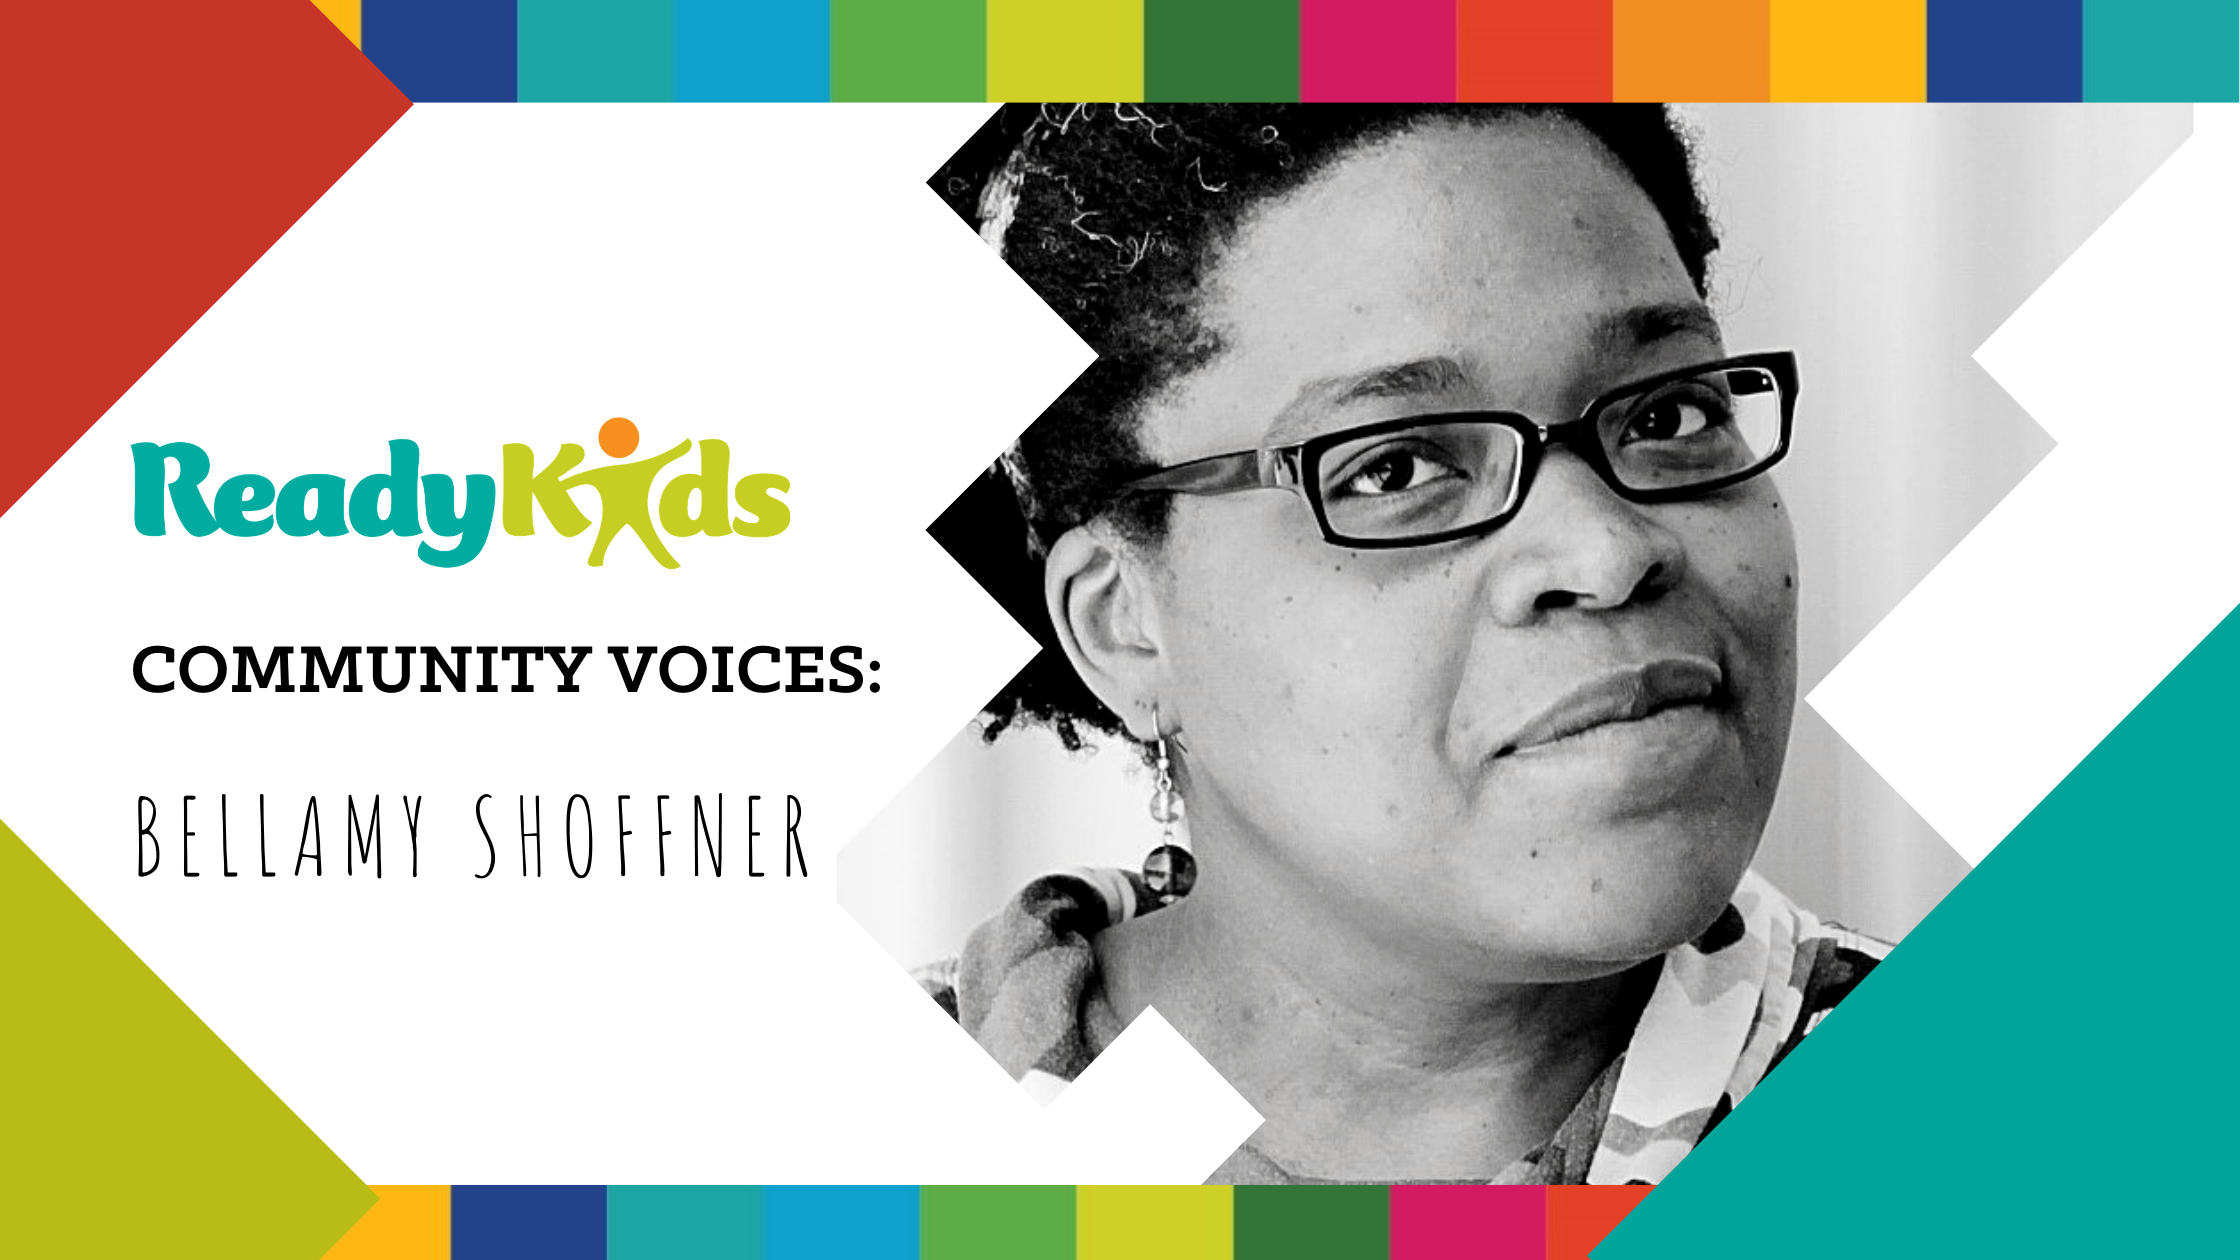 ReadyKids Community Voices: Bellamy Shoffner